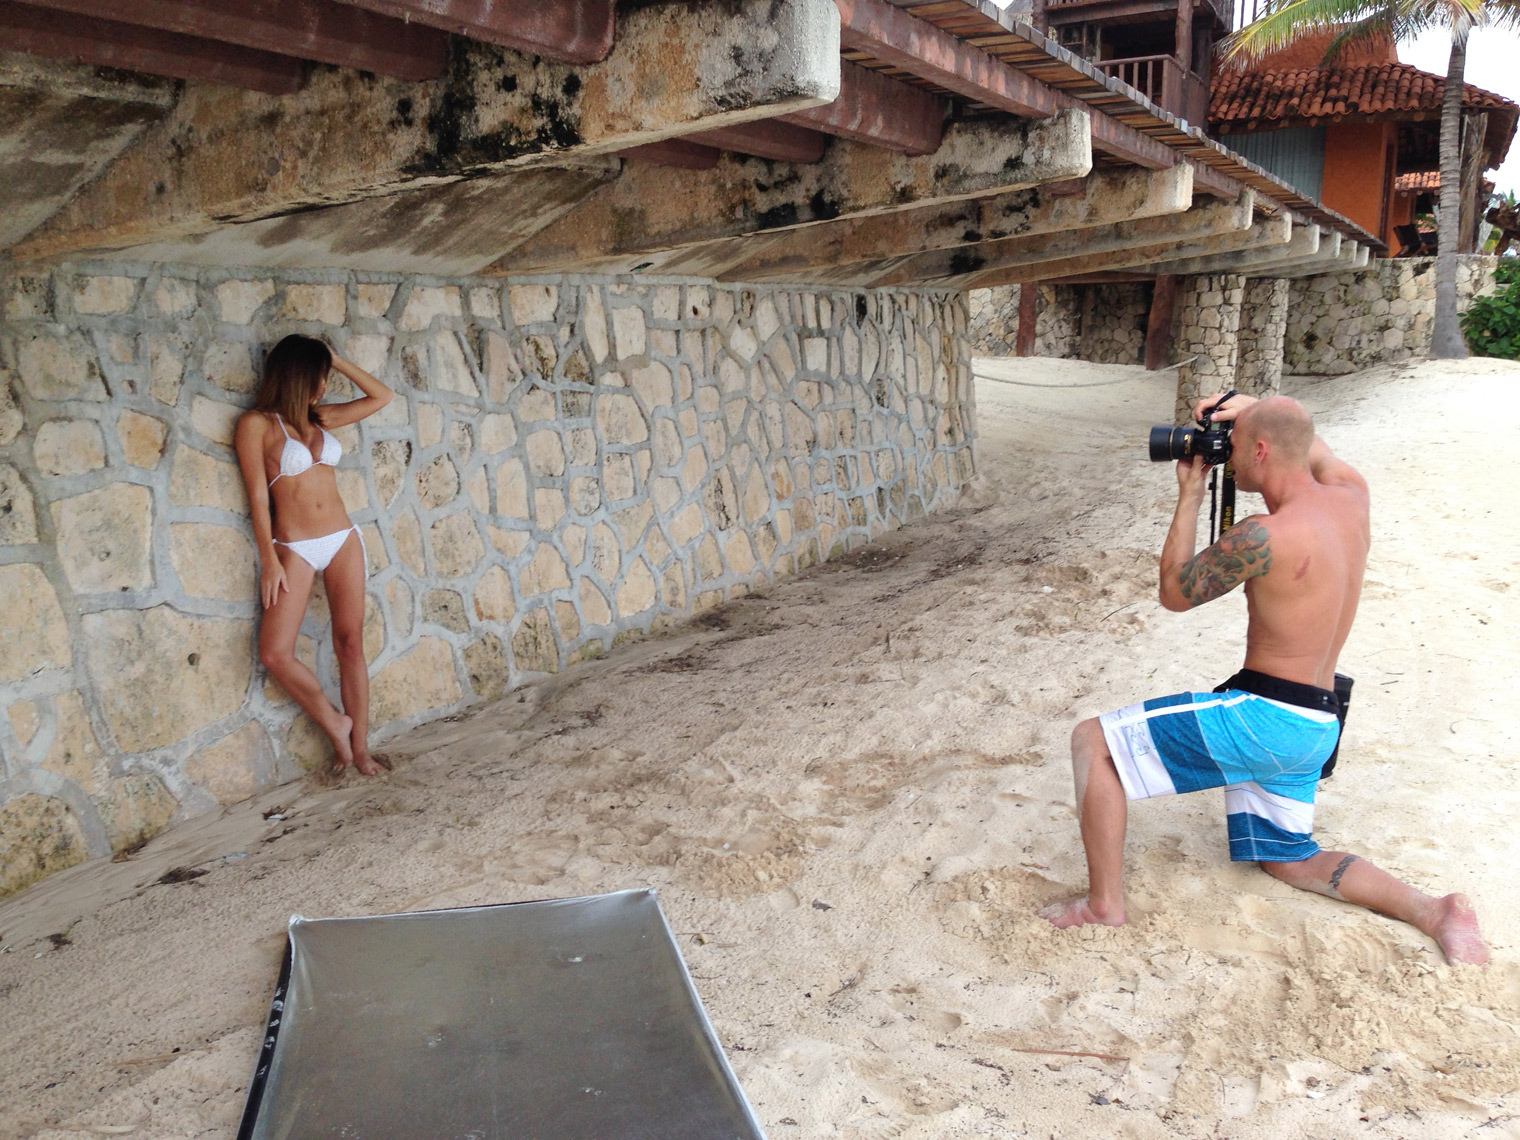 2017-Vancouver-BTS-Photographer-ErichSaide-Behindthescenes-Mexico-Bikini